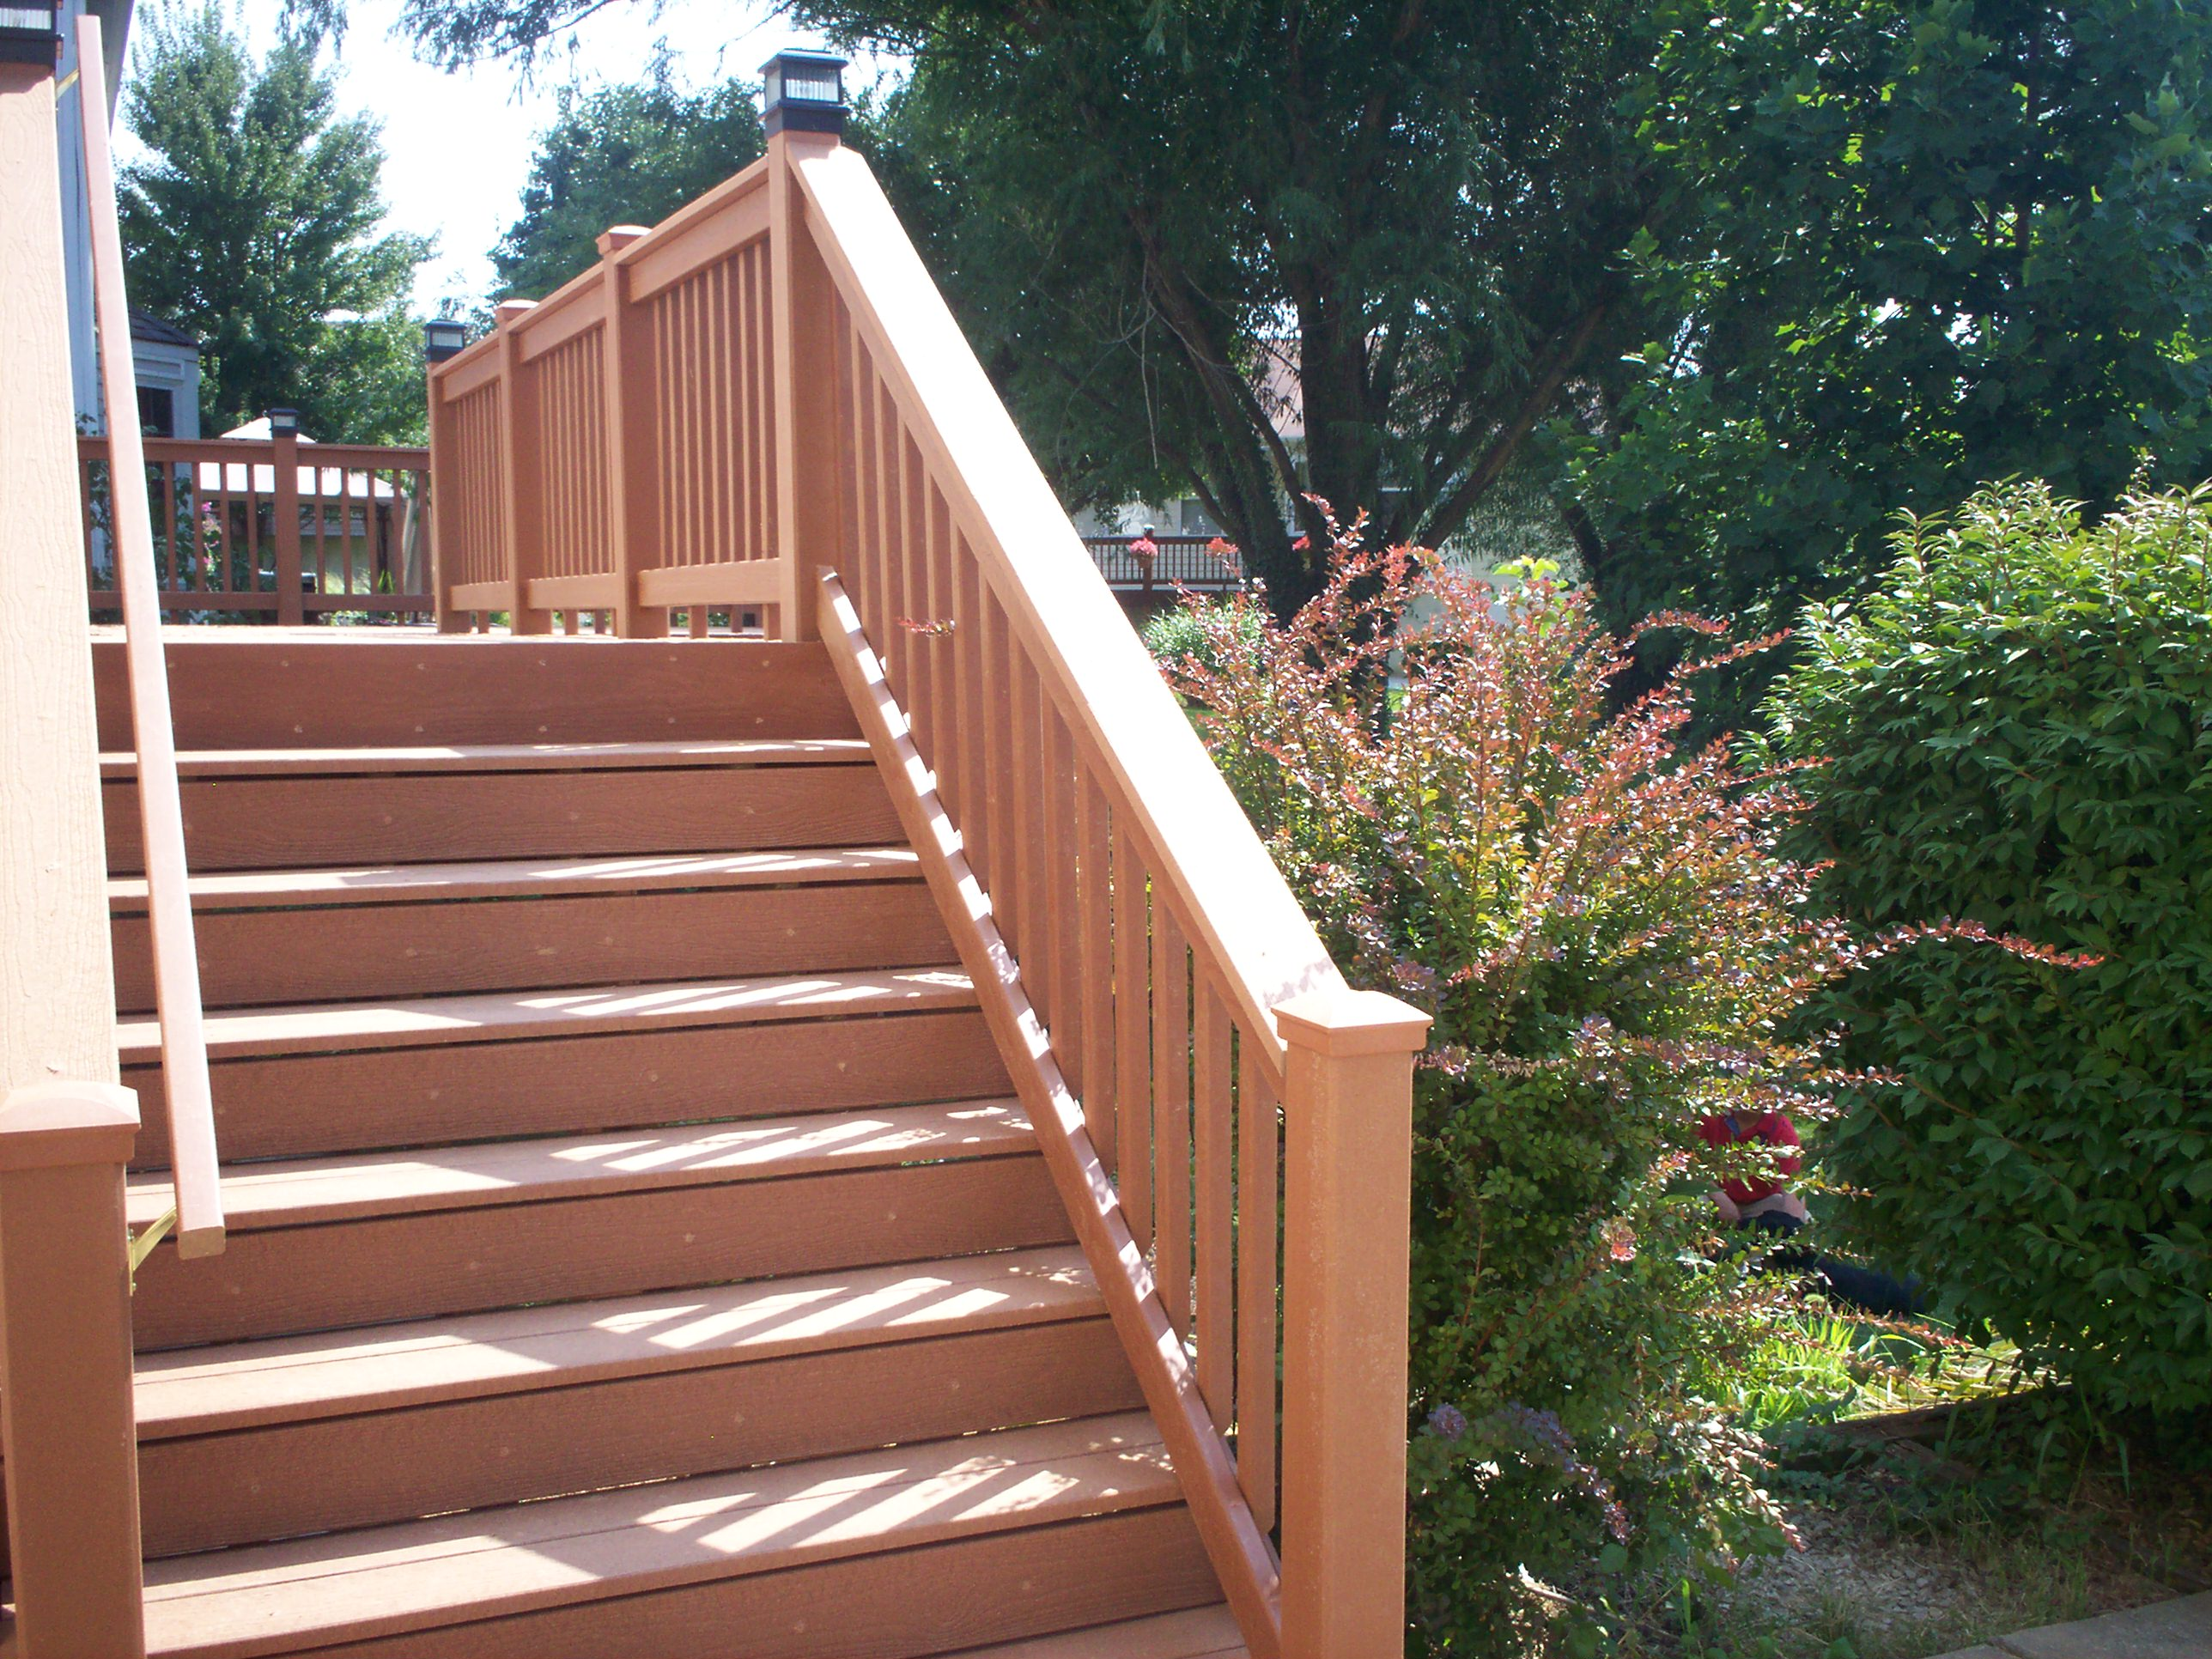 https://archadeckwestcounty.files.wordpress.com/2015/10/deck-steps-with-guard-rail-and-hand-rail-st-louis-mo-by-archadeck.jpg